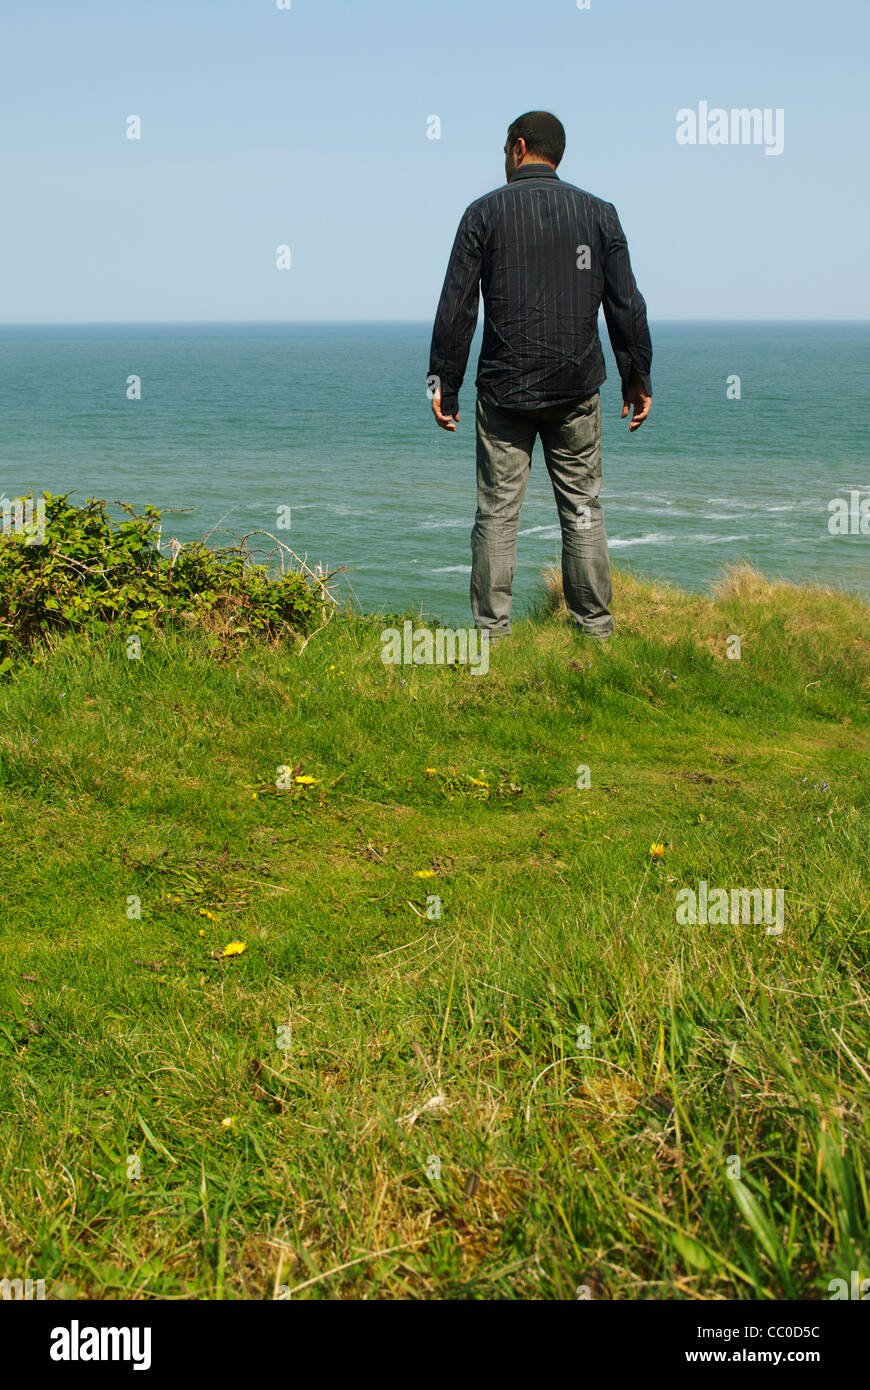 Man standing on a cliff by the sea - Stock Image